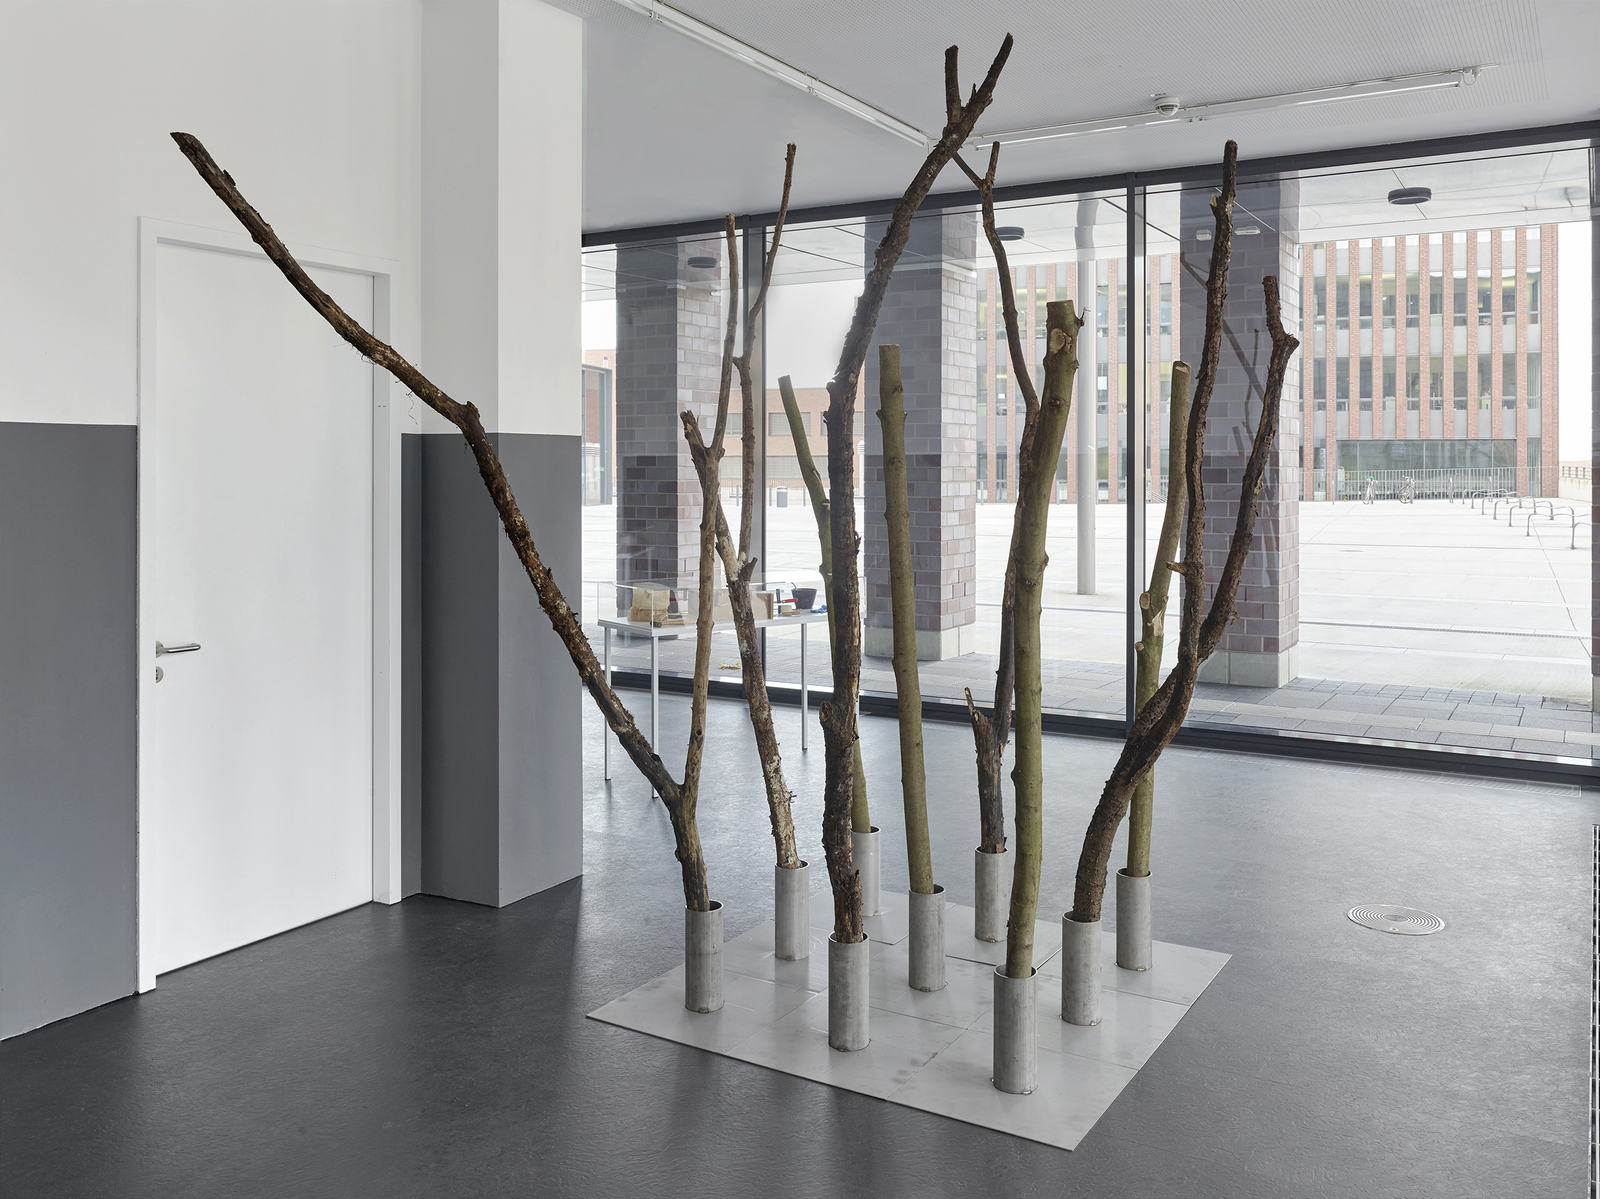 1_Shelly Nadashi NESTING BOX, Installation View_Dortmunder Kunstverein, Photo Simon Vogel